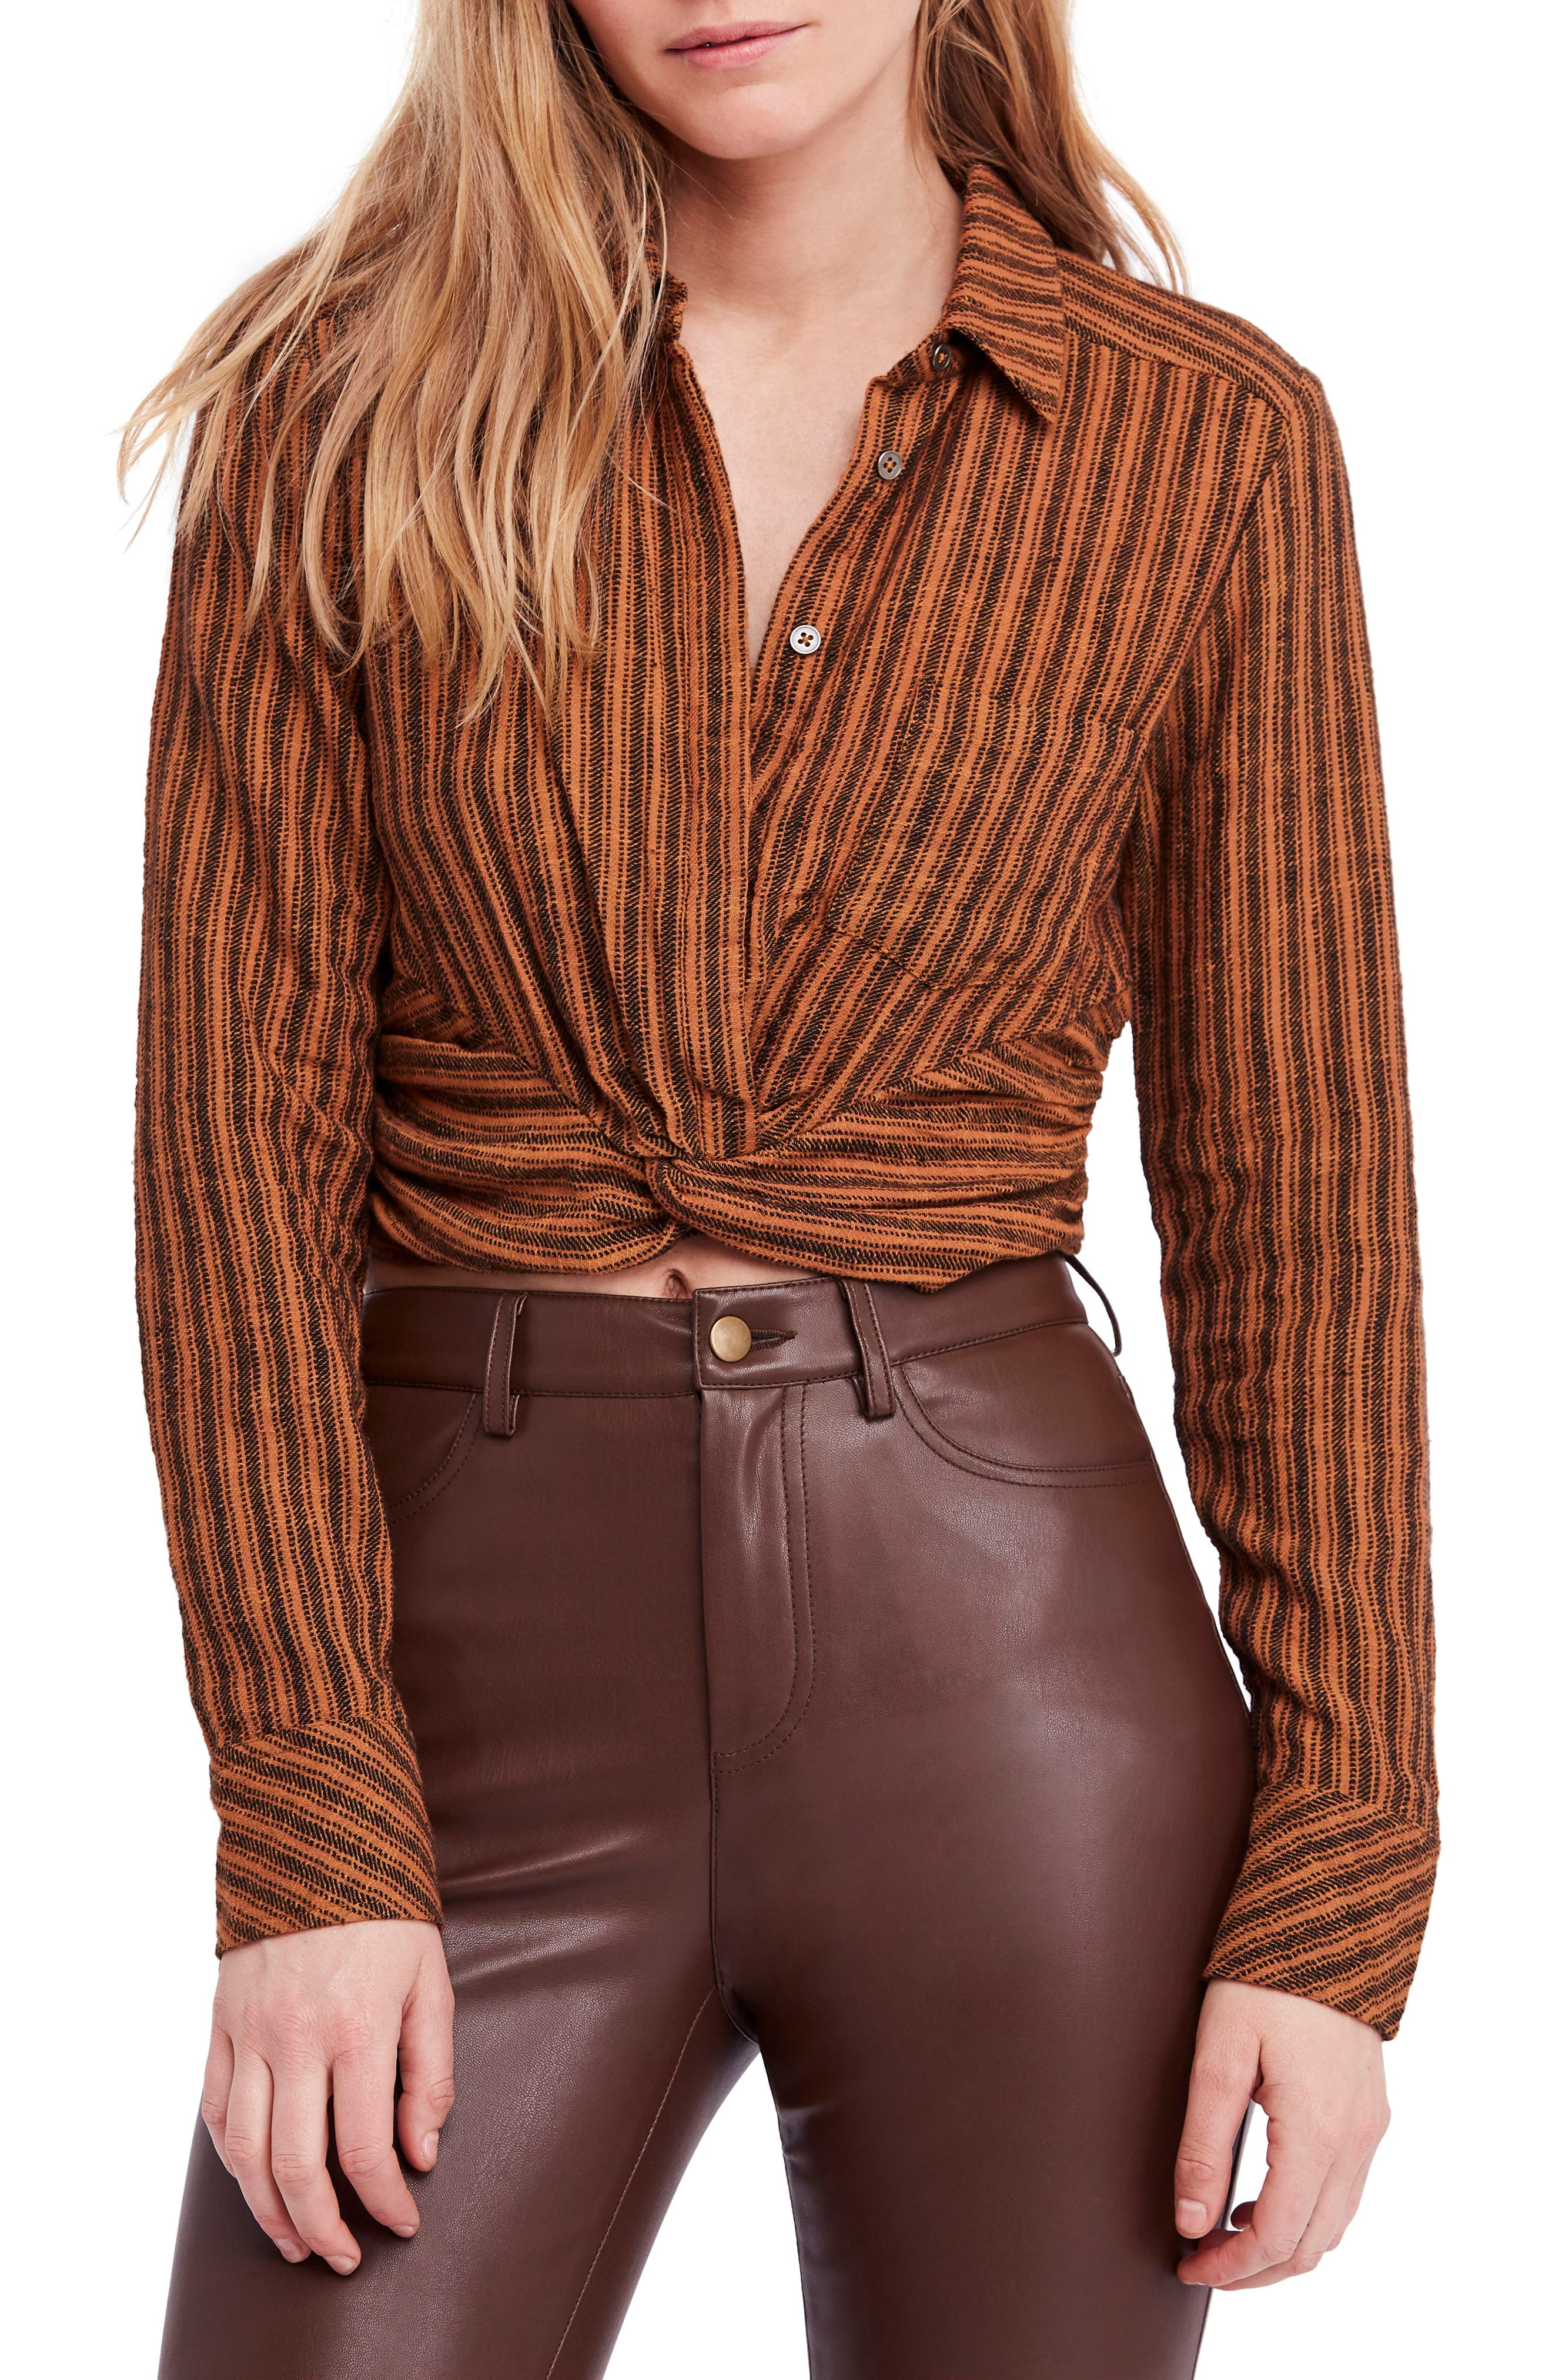 FREE PEOPLE Lust for Life Twist Top, Main, color, 205